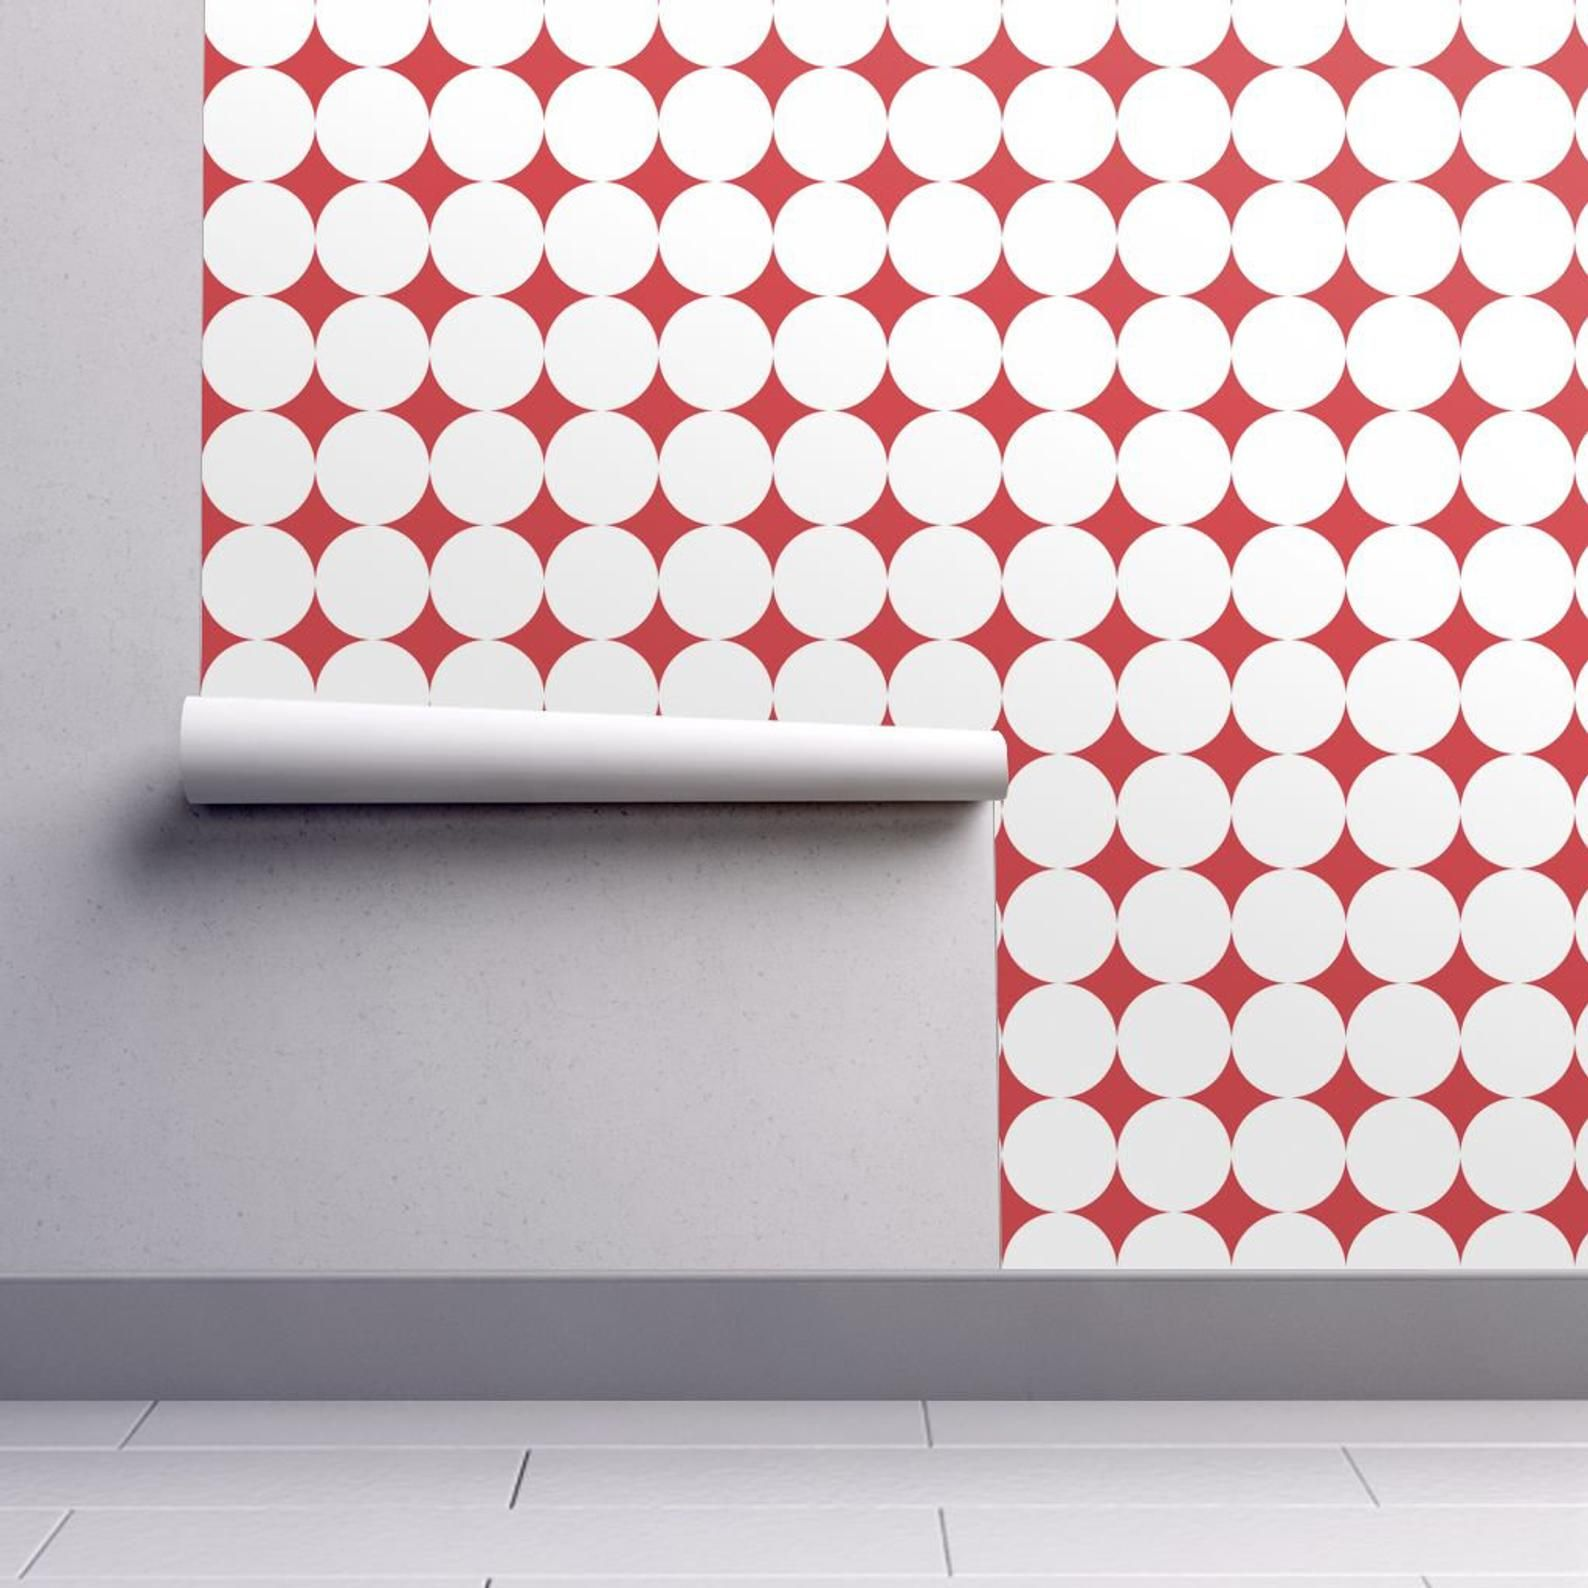 Mod Wallpaper Polka Dot White On Red By Juliesfabrics Etsy Self Adhesive Wallpaper Peel And Stick Wallpaper Spoonflower Wallpaper